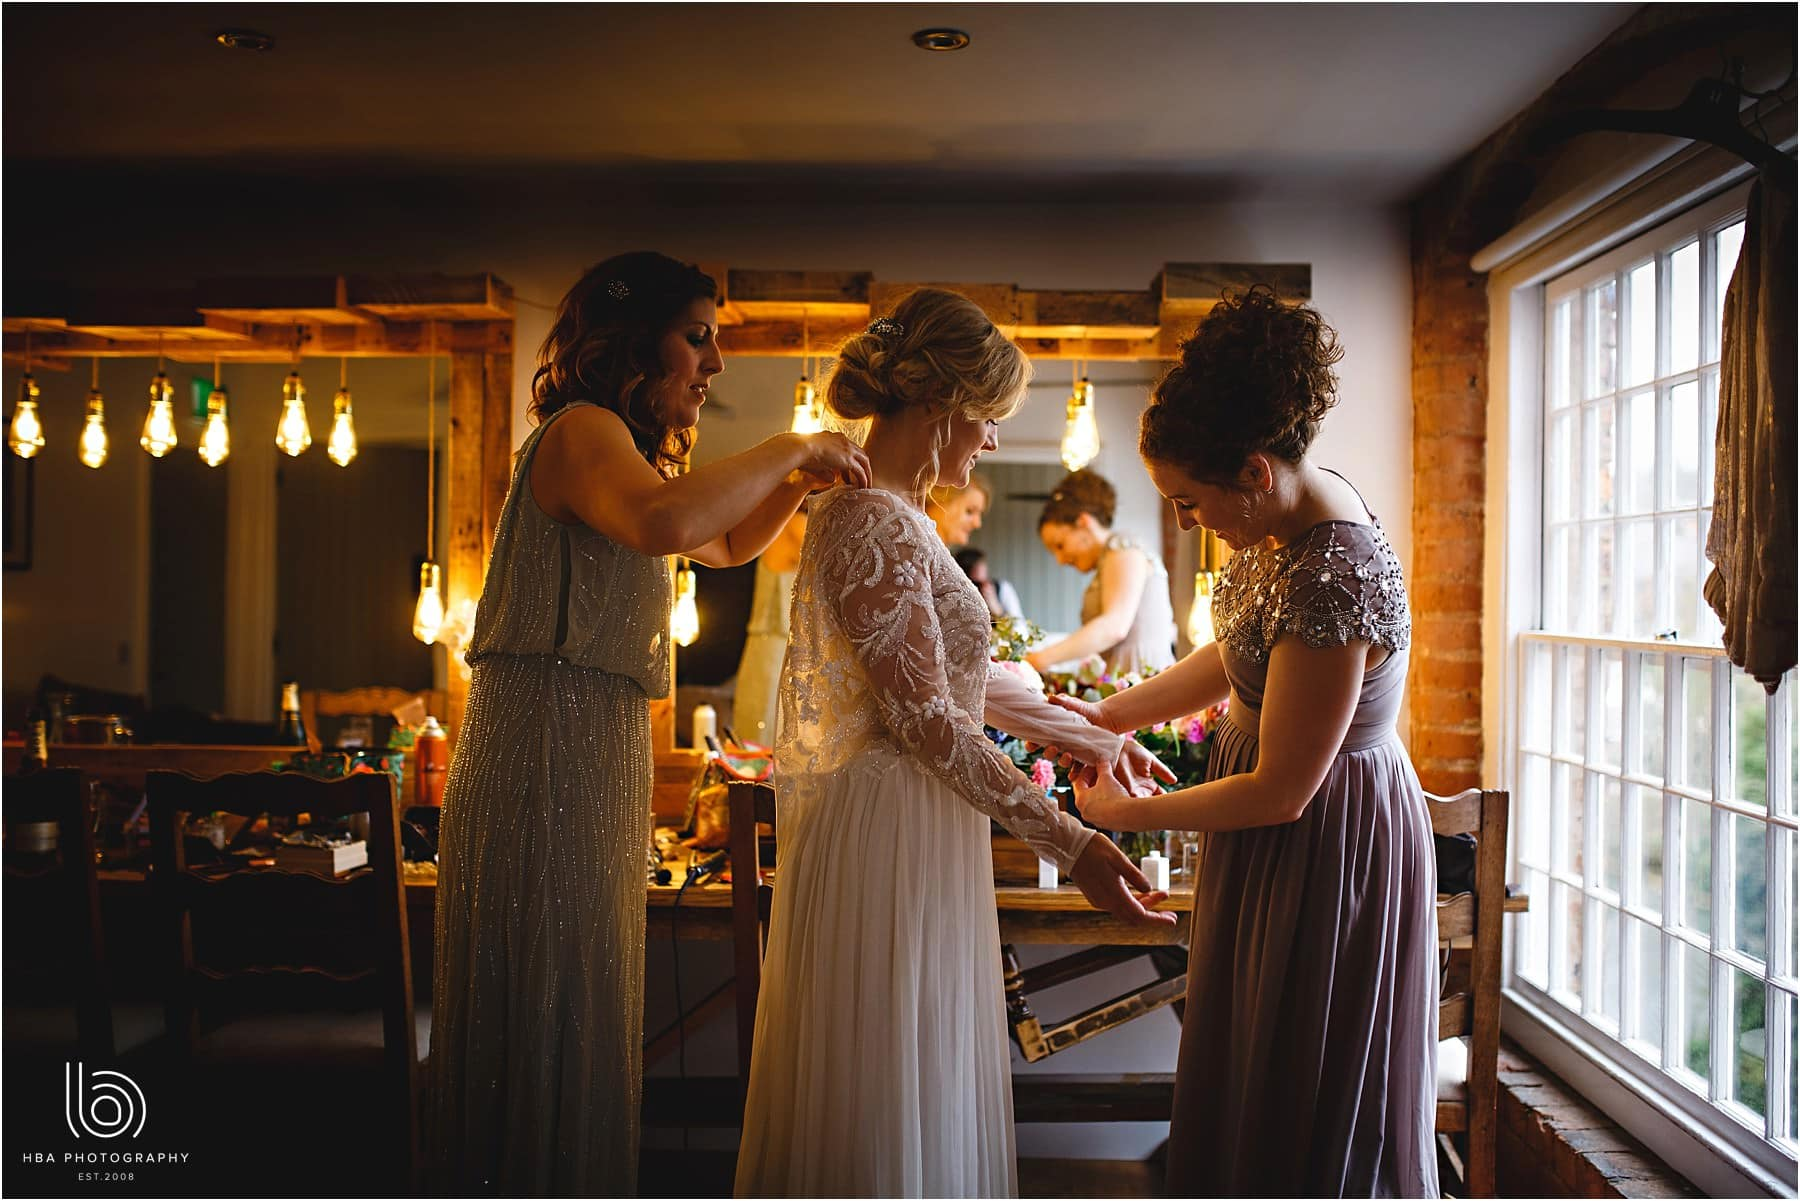 the bride and her bridemaids getting ready